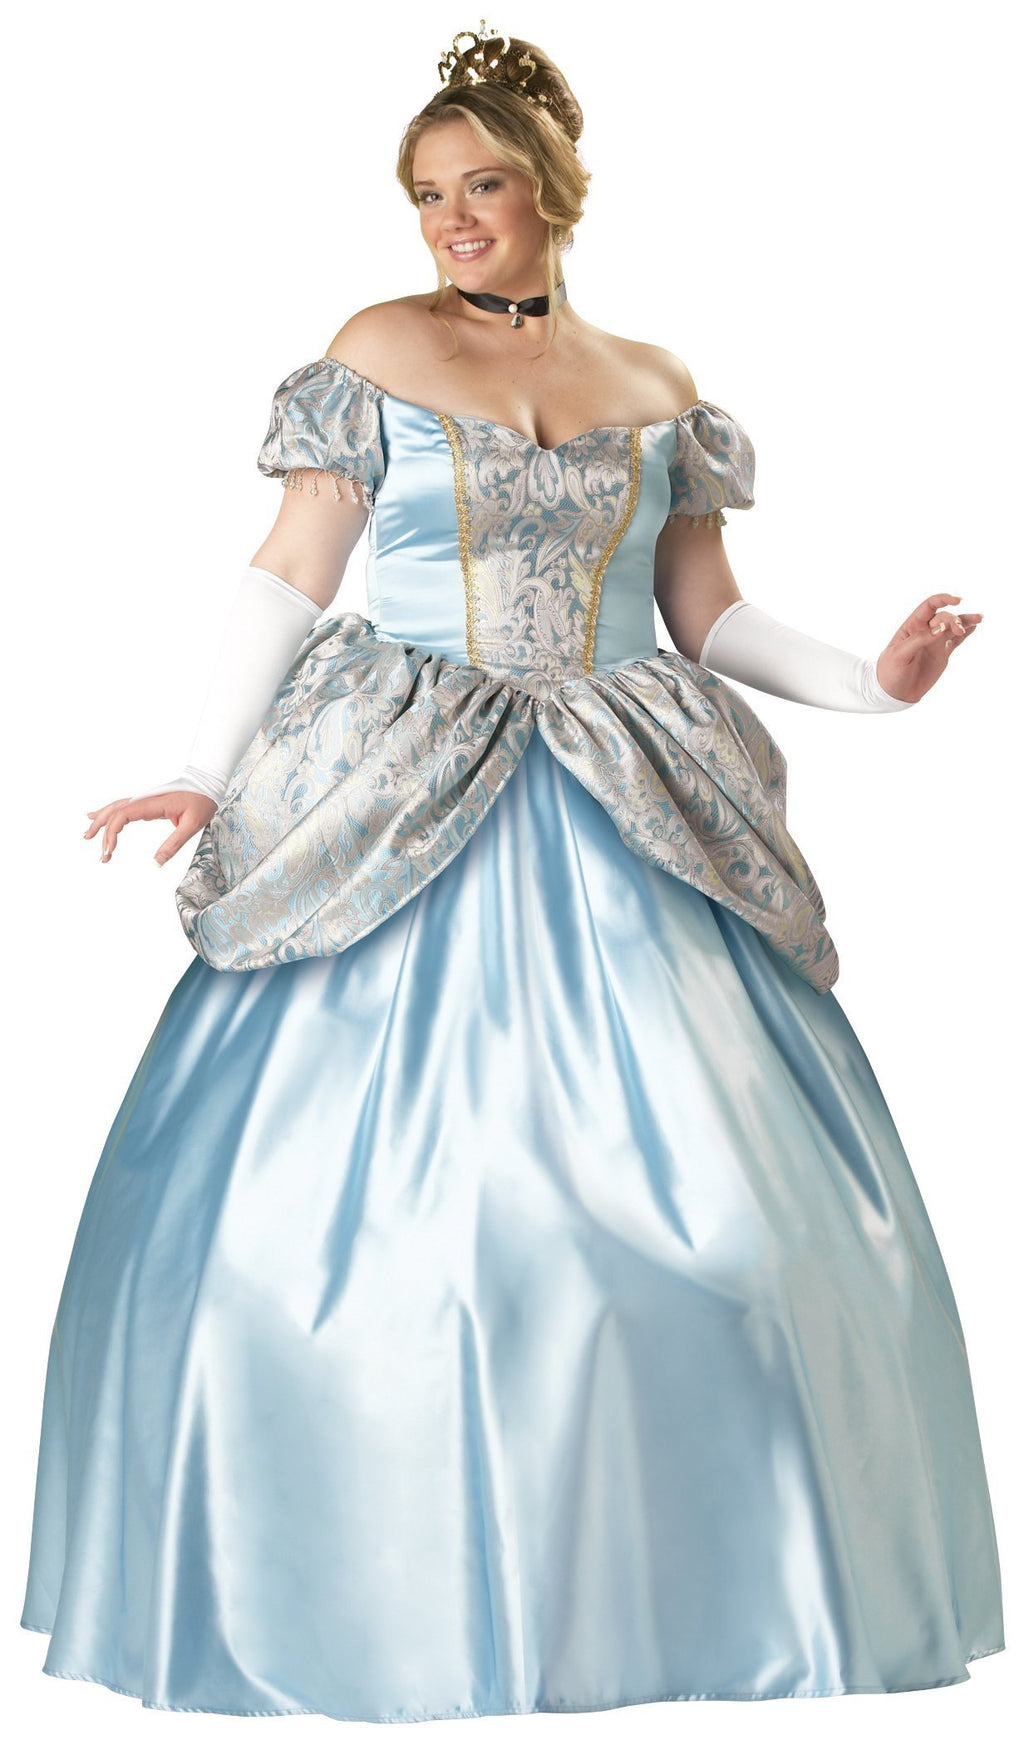 InCharacter Costumes XX-LARGE Deluxe Enchanting Princess Plus Size Costume